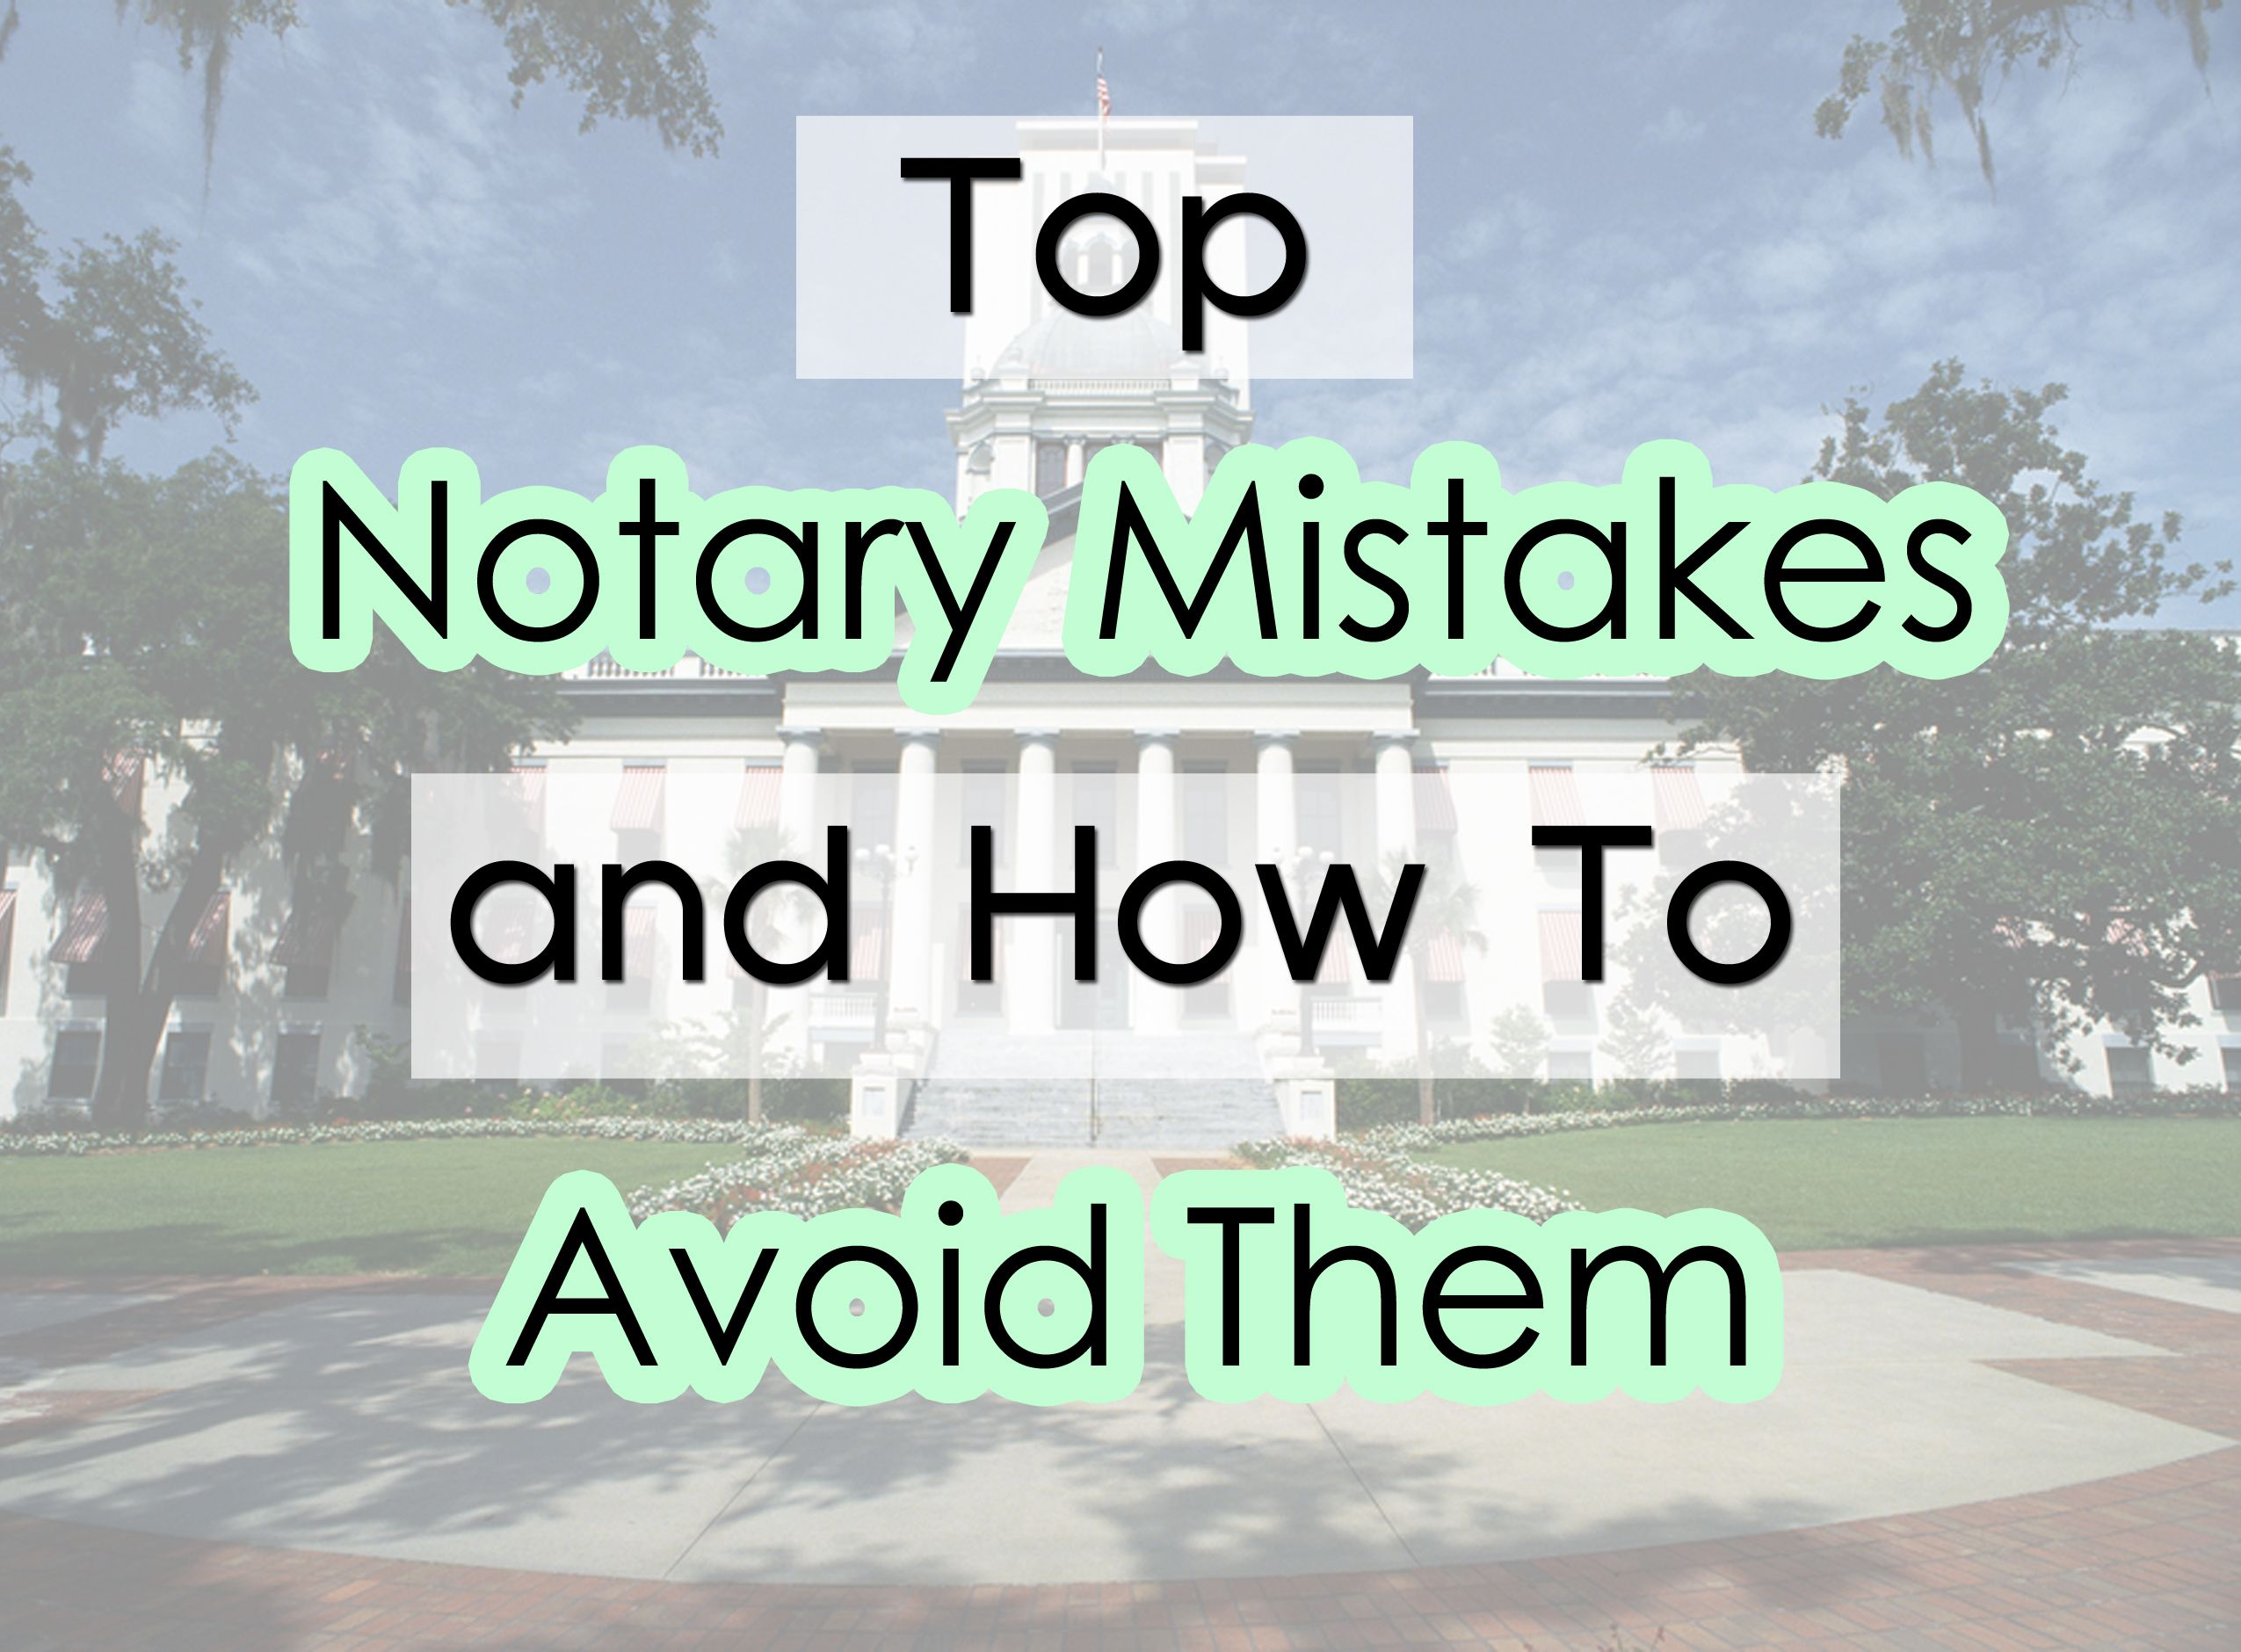 Top Notary Mistakes and How to Avoid Them (With images